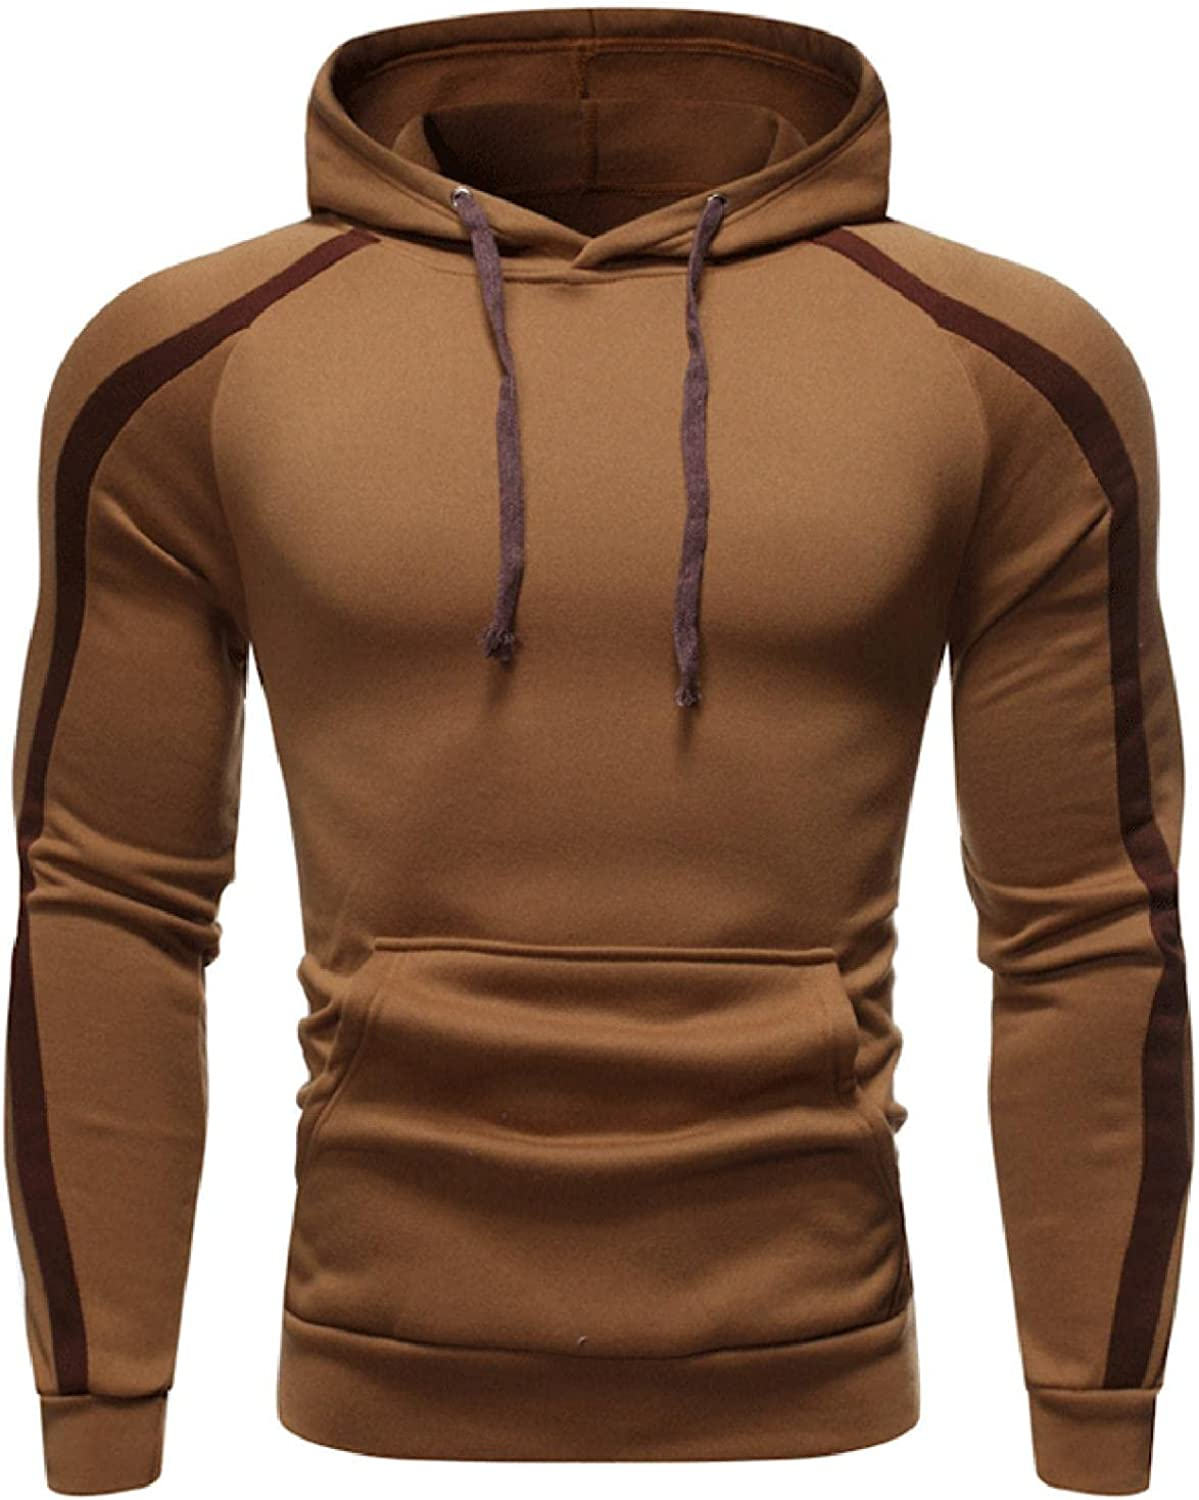 Huangse Long Sleeve Hoodie for Men Solid Color Pullover with Pockets Autumn Casual Sweatshirt for Sports Joggers